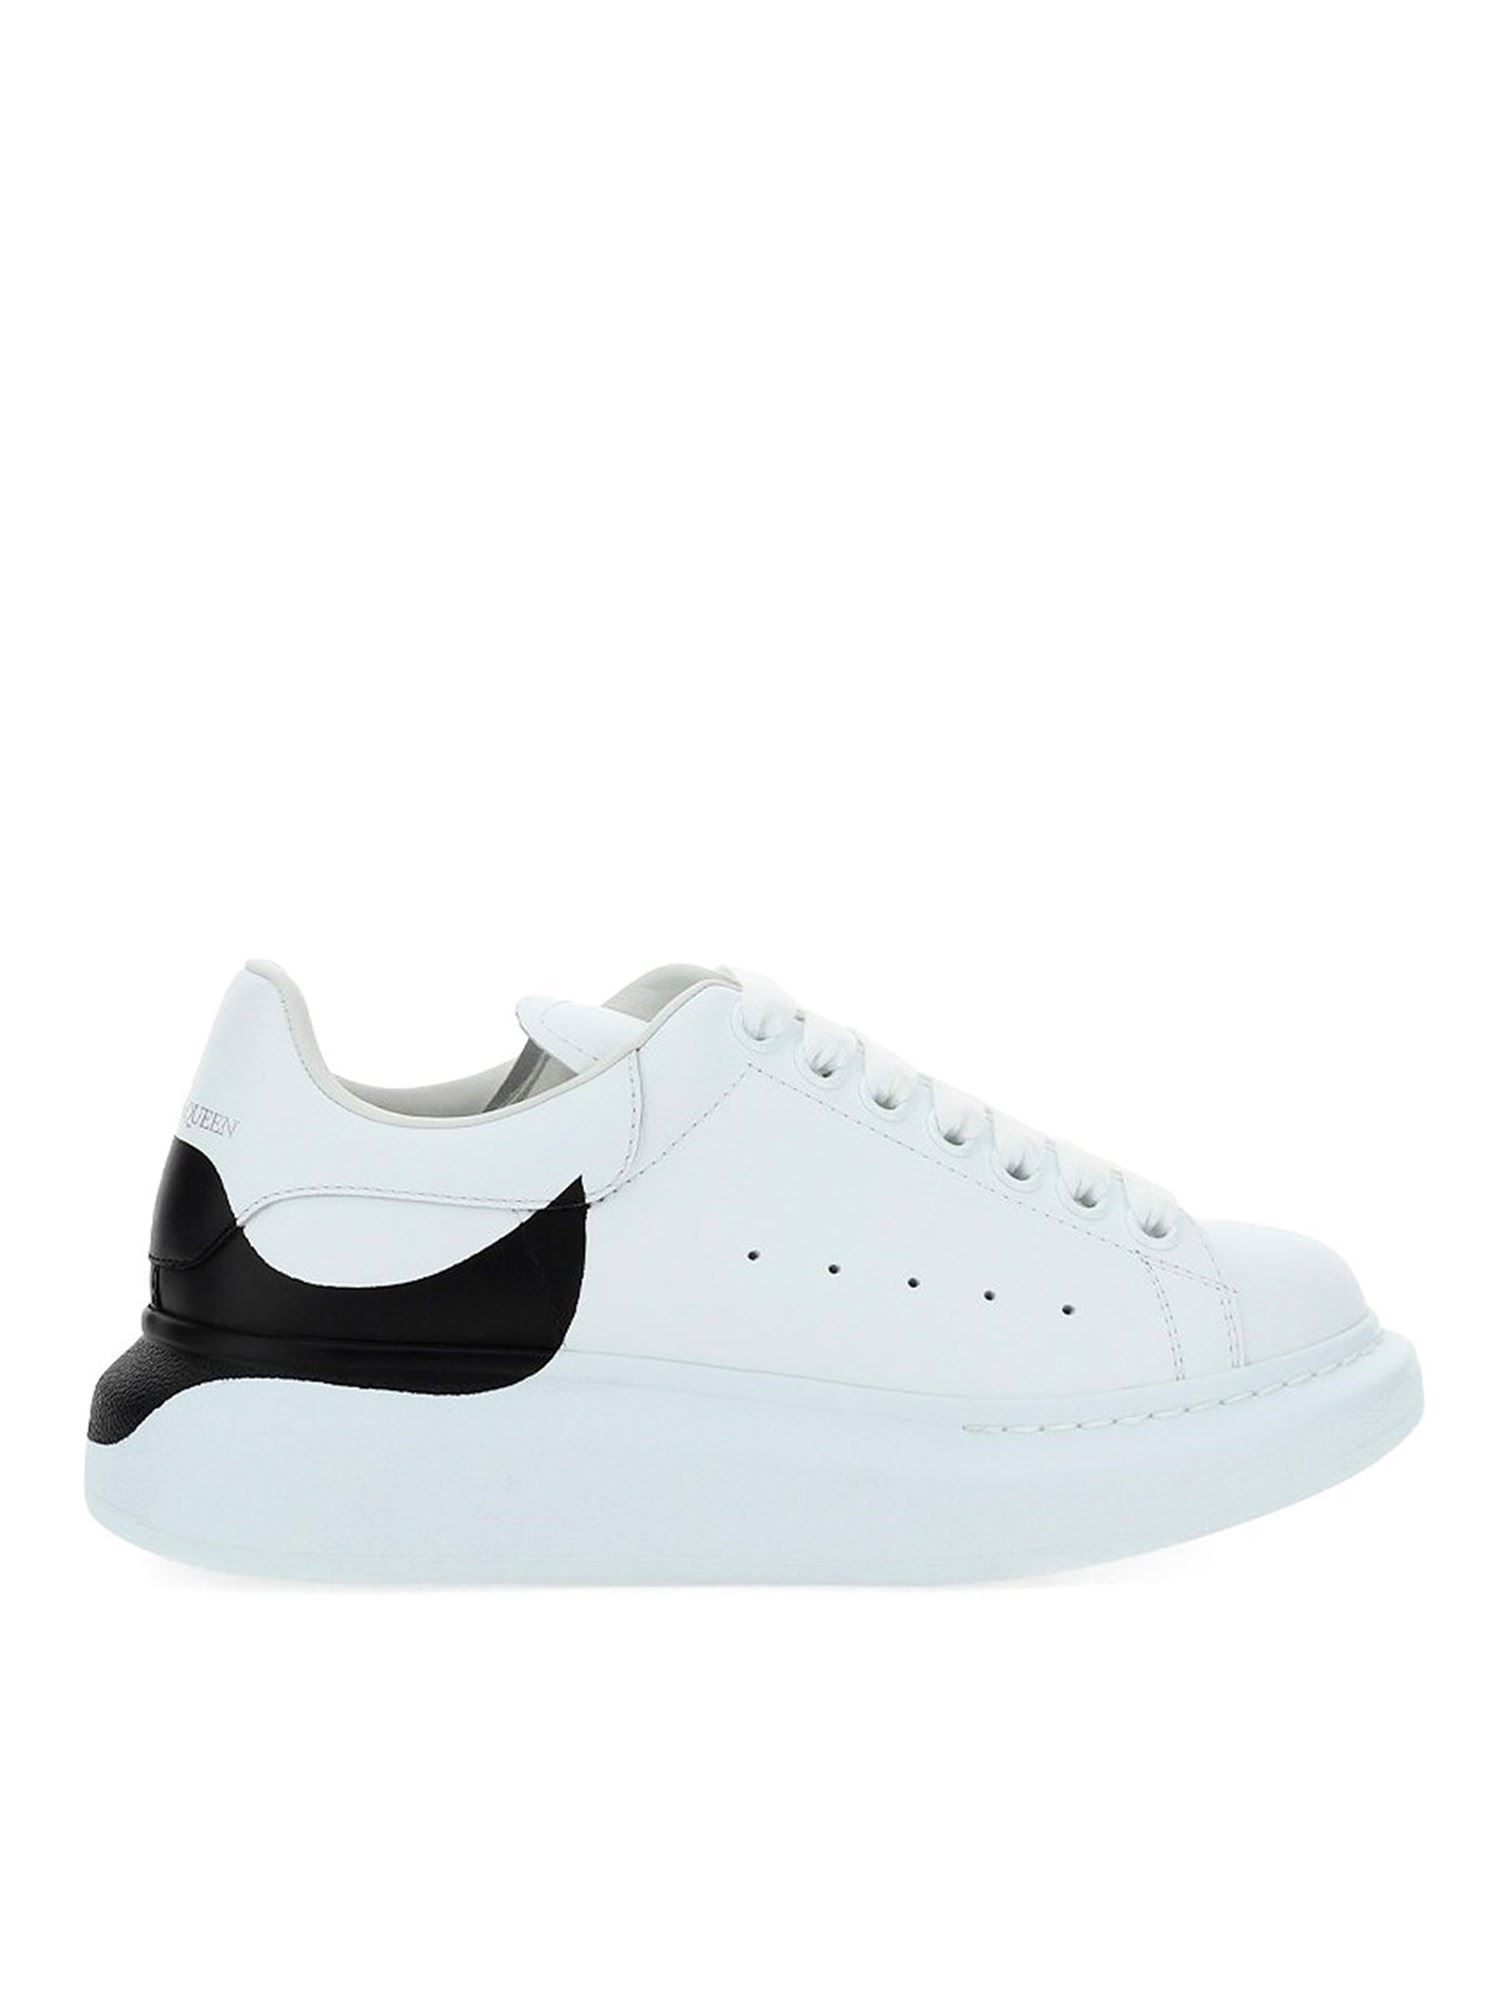 Alexander Mcqueen ALEXANDER MCQUEEN OVERSIZE LEATHER SNEAKERS IN WHITE